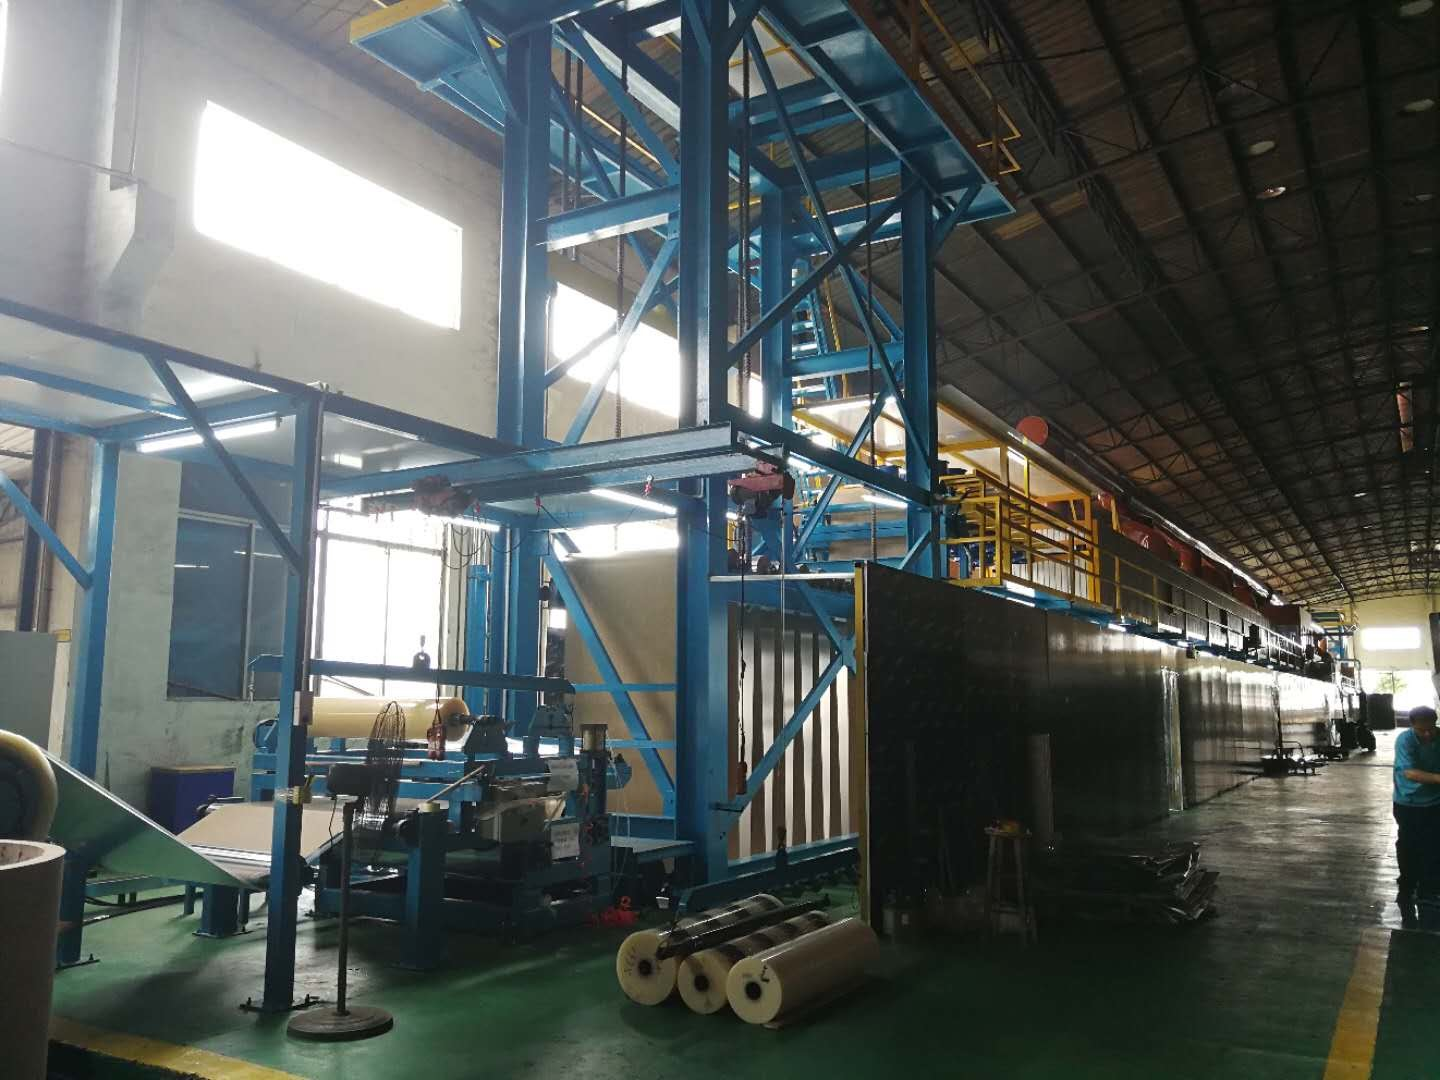 The new production line for color coated aluminum has set up